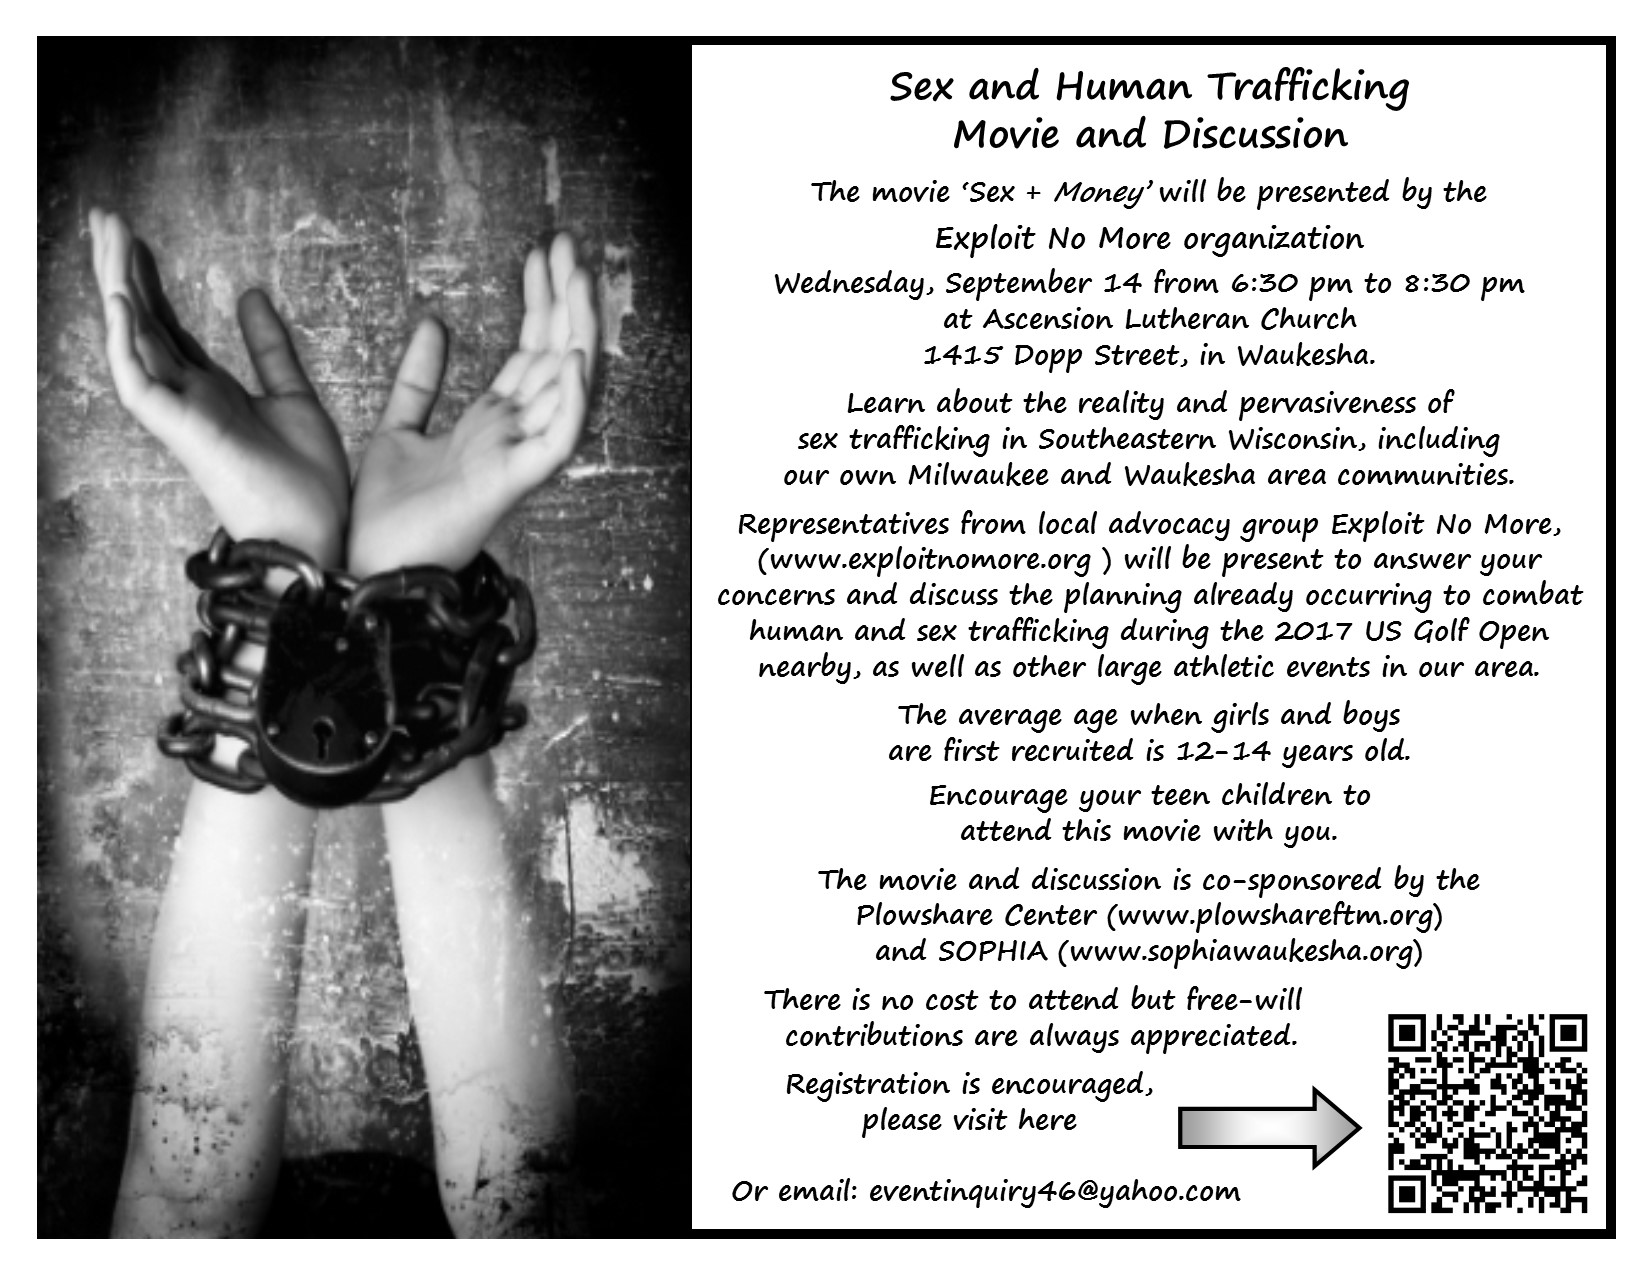 You can register at the link below:   https://www.eventbrite.com/e/sex-money-human-trafficking-movie-and-discussion-tickets-26293358142?aff=es2